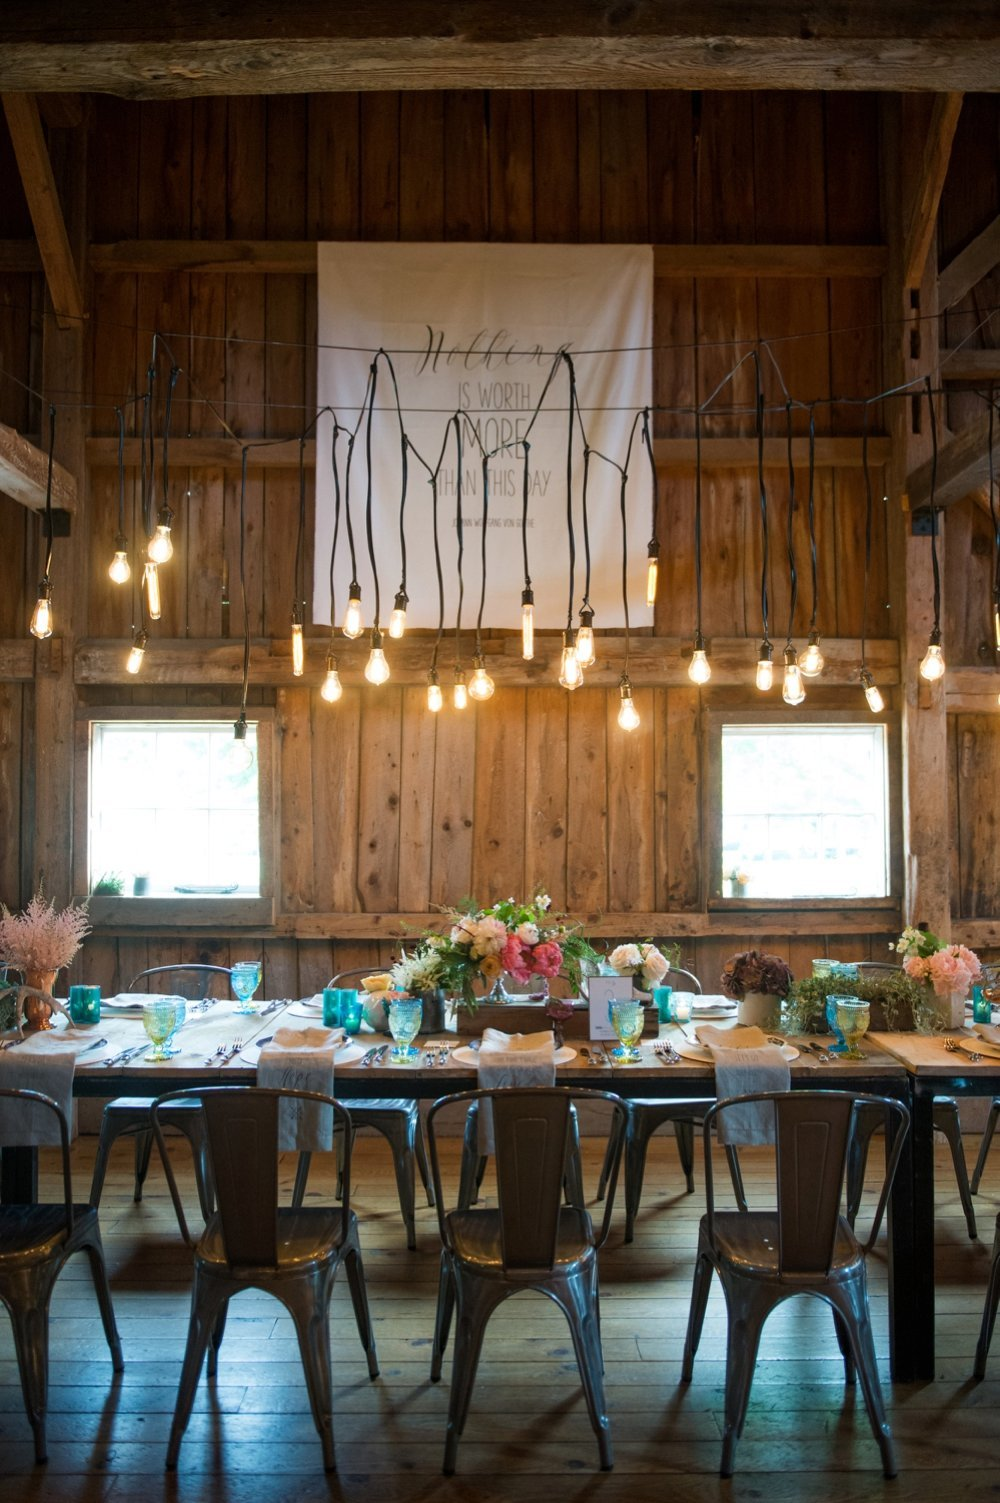 Gorgeous rustic tablescape for barn wedding with Edison Bulb light installation